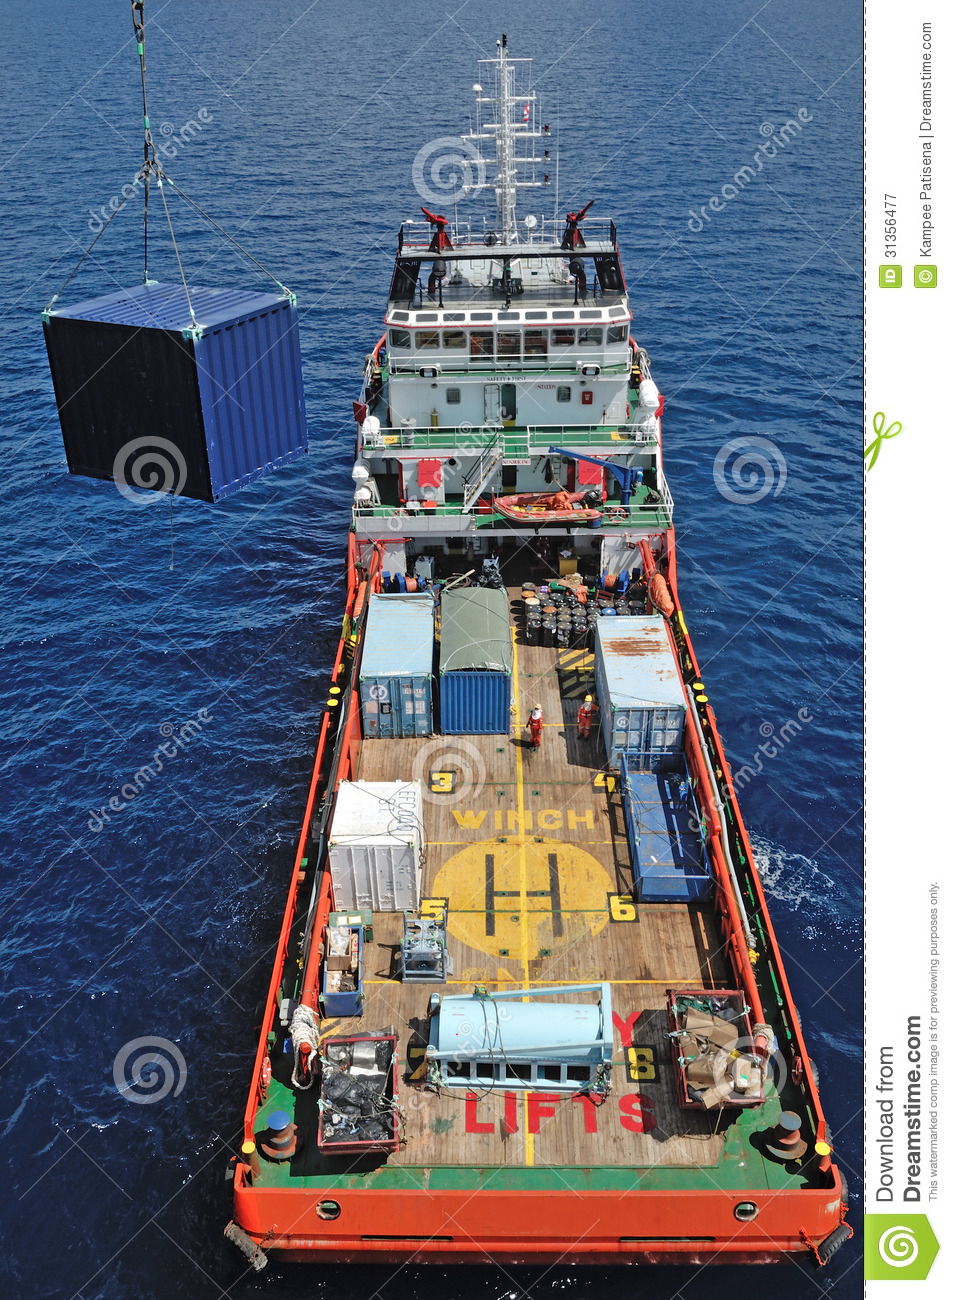 Supply Boat For Offshore Oil Rig Operation. Royalty Free Stock Photography - Image: 31356477